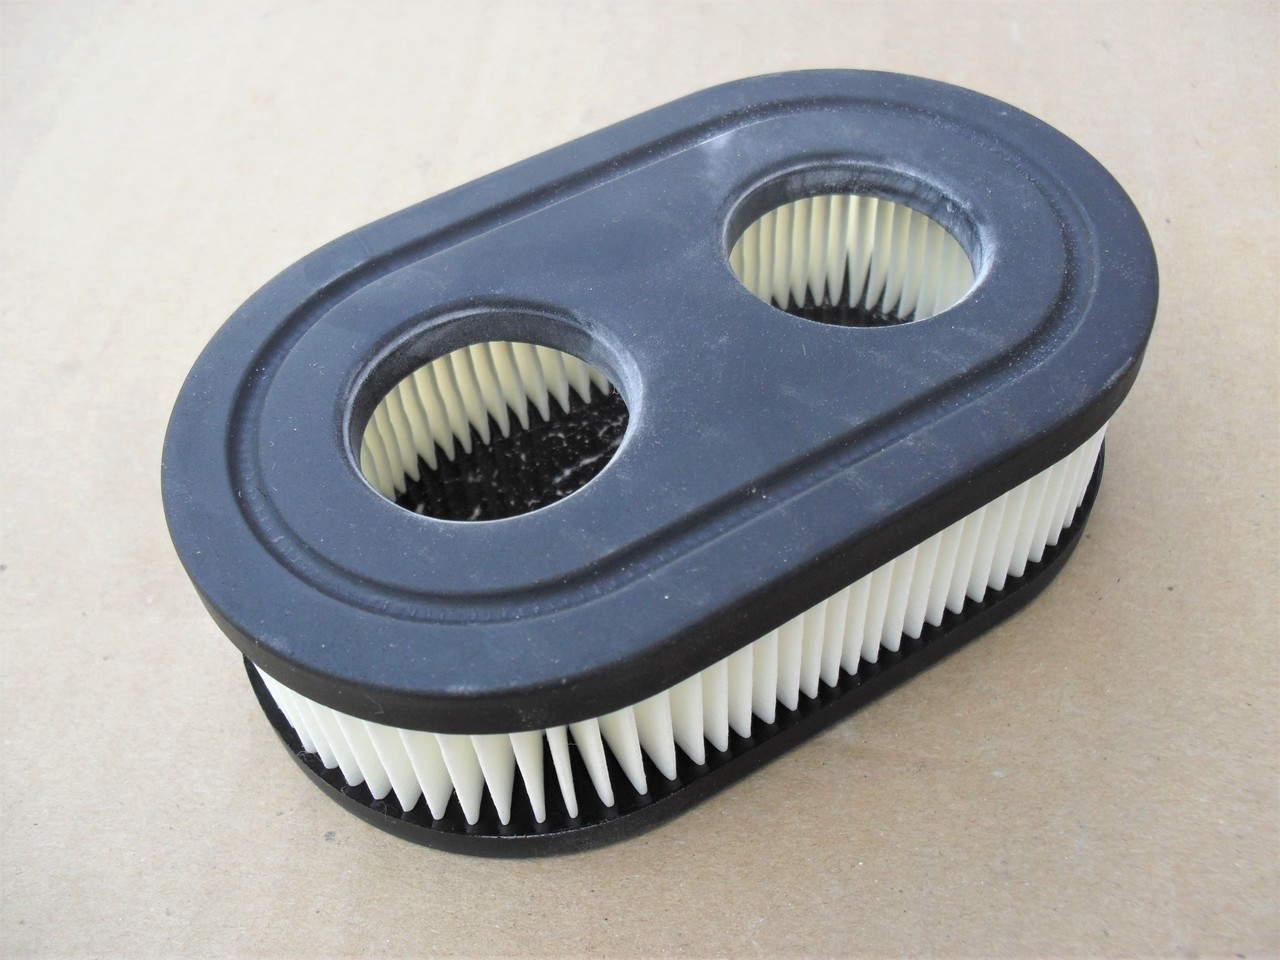 Air Filter for Briggs and Stratton 09P702, 4247, 5432, 5432K, 593260, 798452